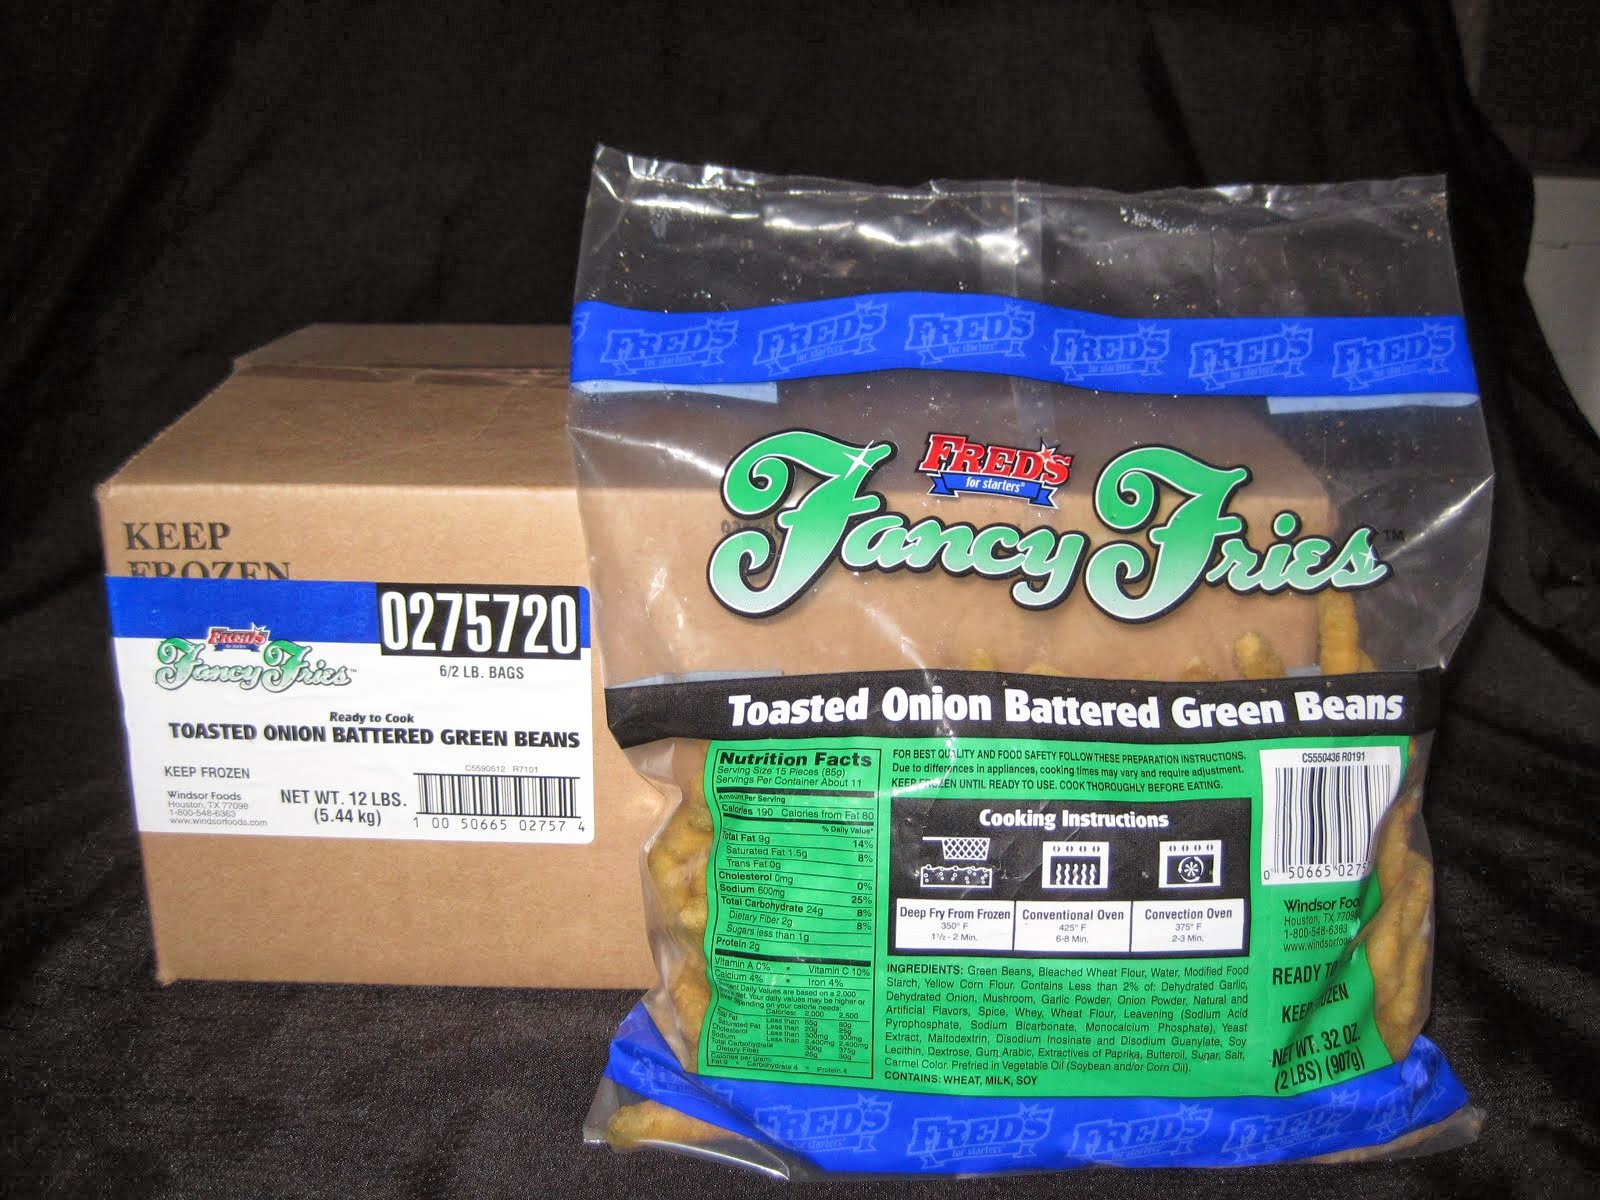 Battered Green Beans 6/2 lb bags - Item # 12277 & 12278 for the split